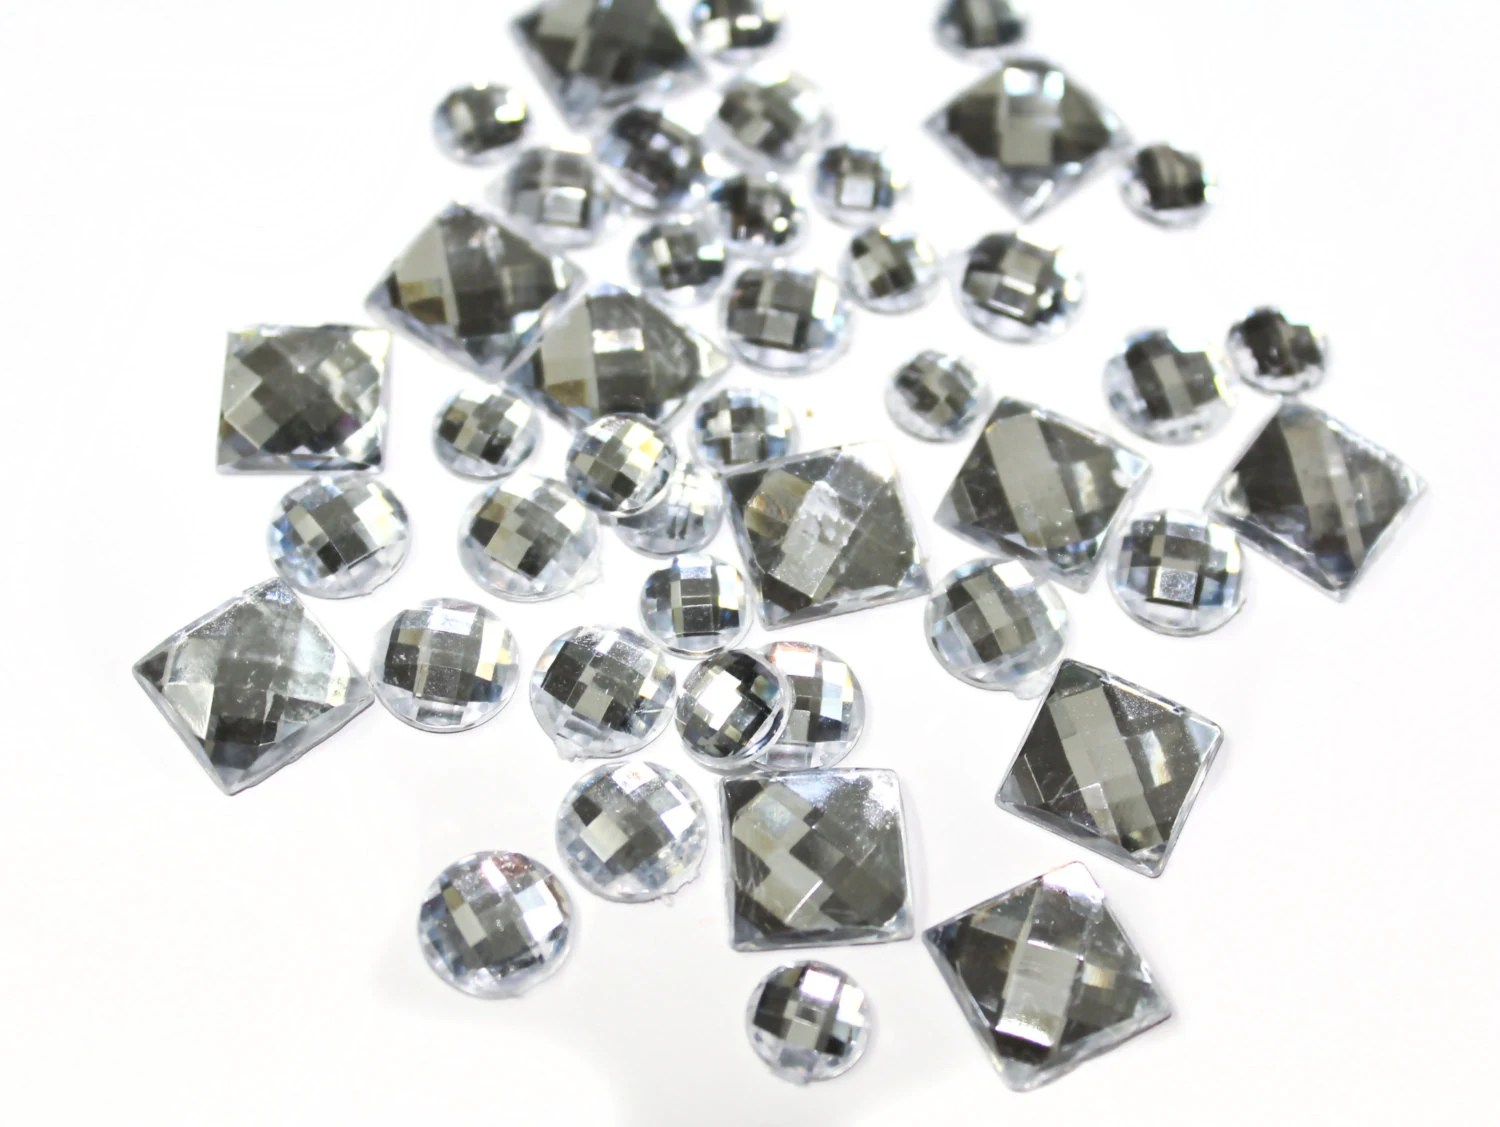 View STUDS SPIKES PYRAMIDS by KBazaar on Etsy